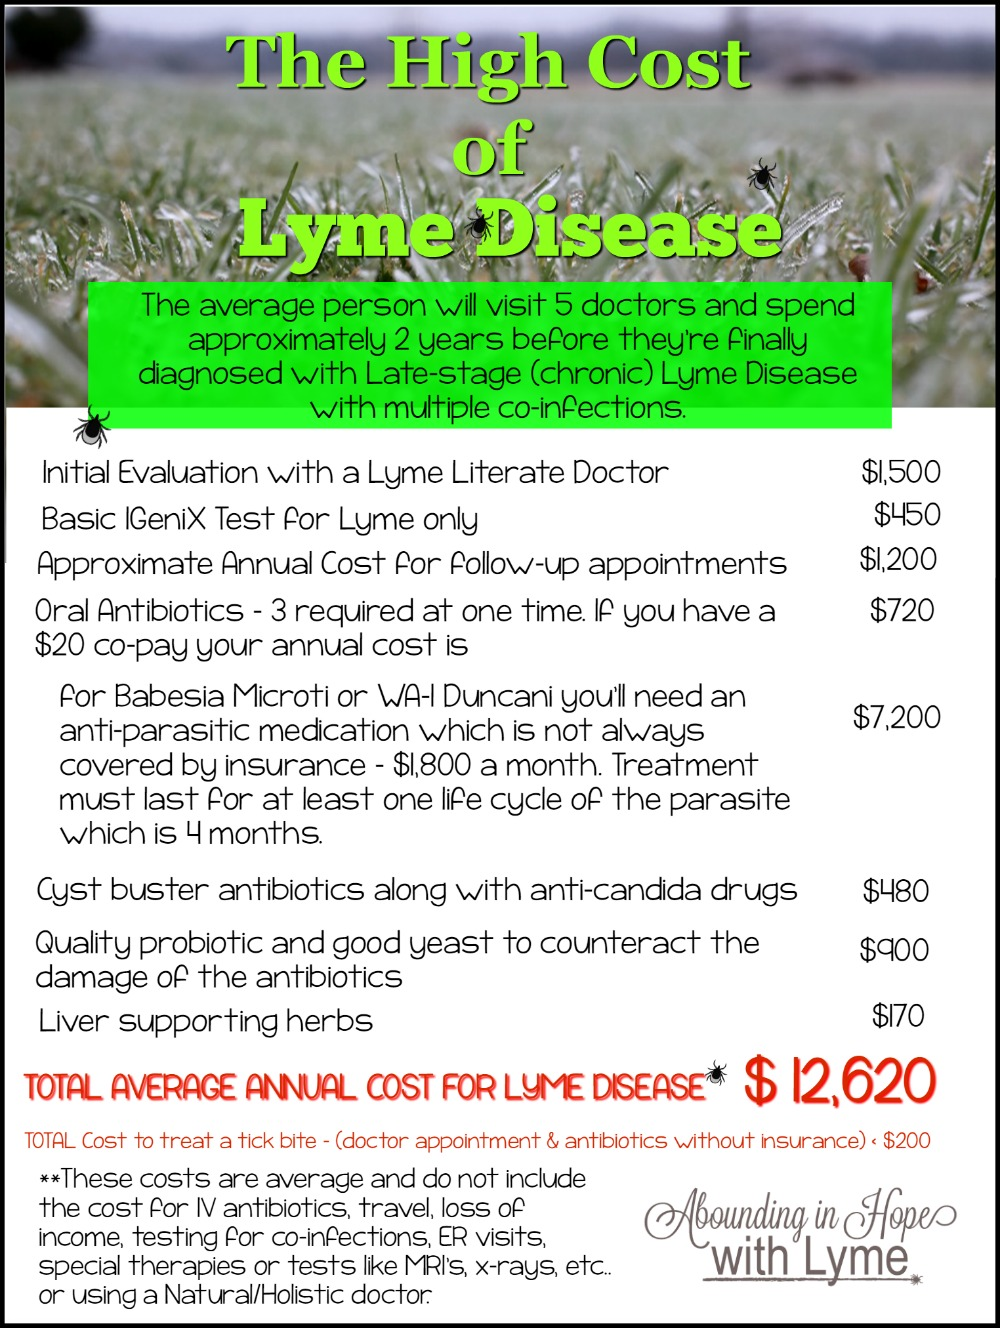 The High Cost of Lyme